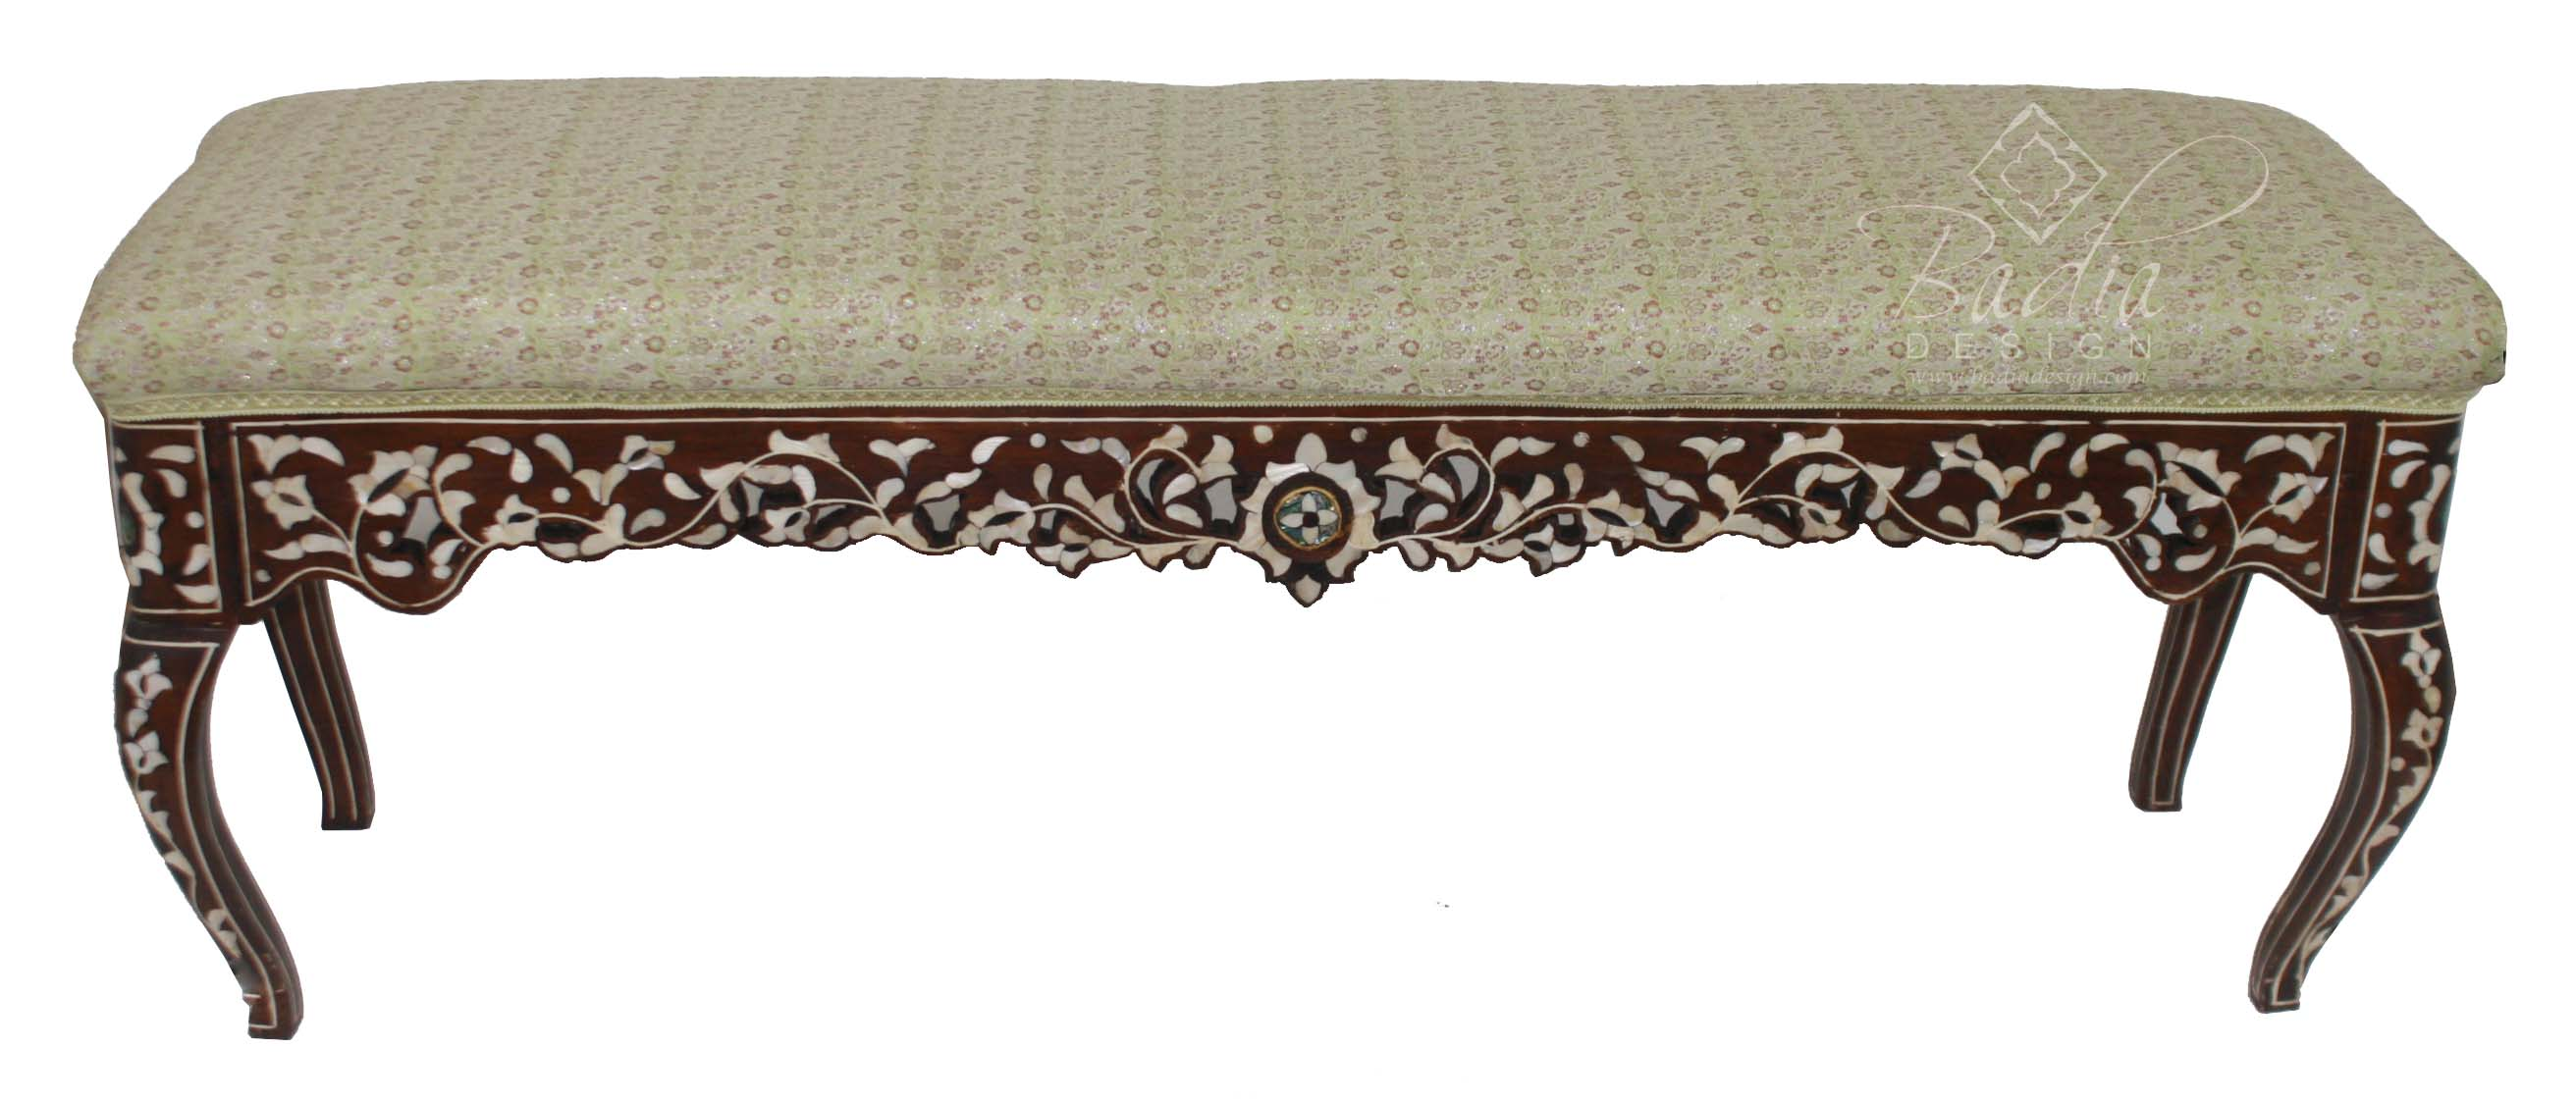 moroccan-mother-of-pearl-bench-mop-b004.jpg